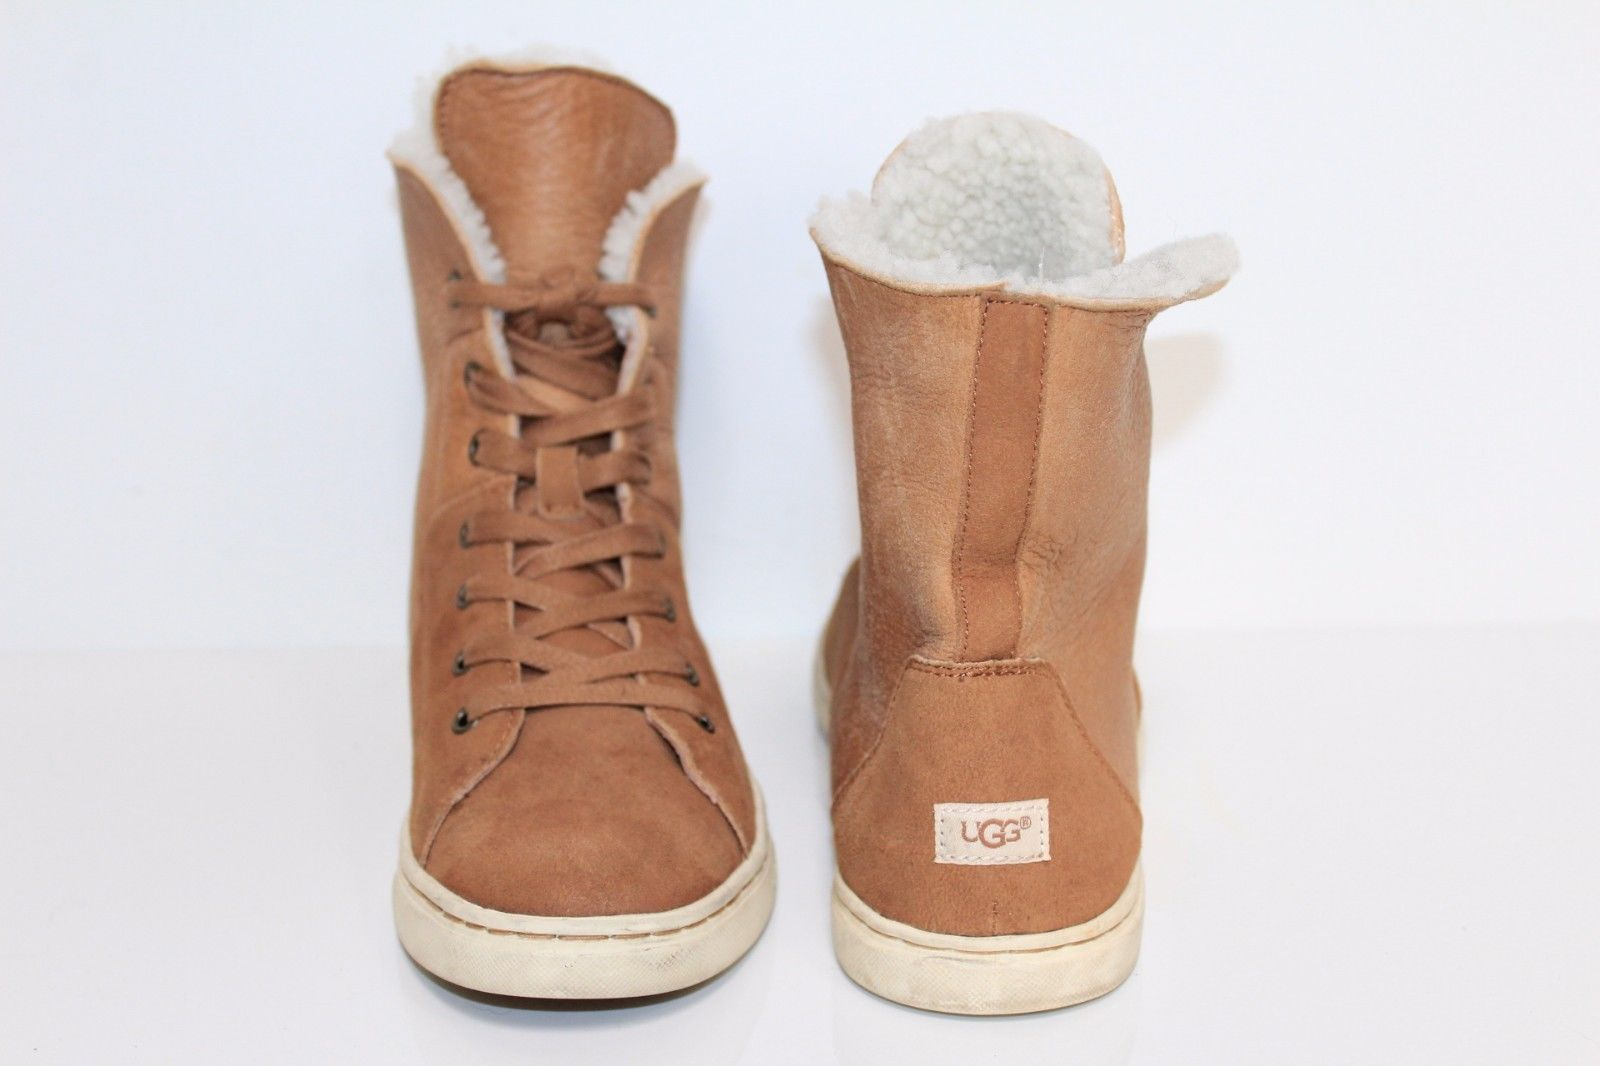 5b376de412c UGG Women Suede Leather High Top Sneaker Boots. NONE are made in ...